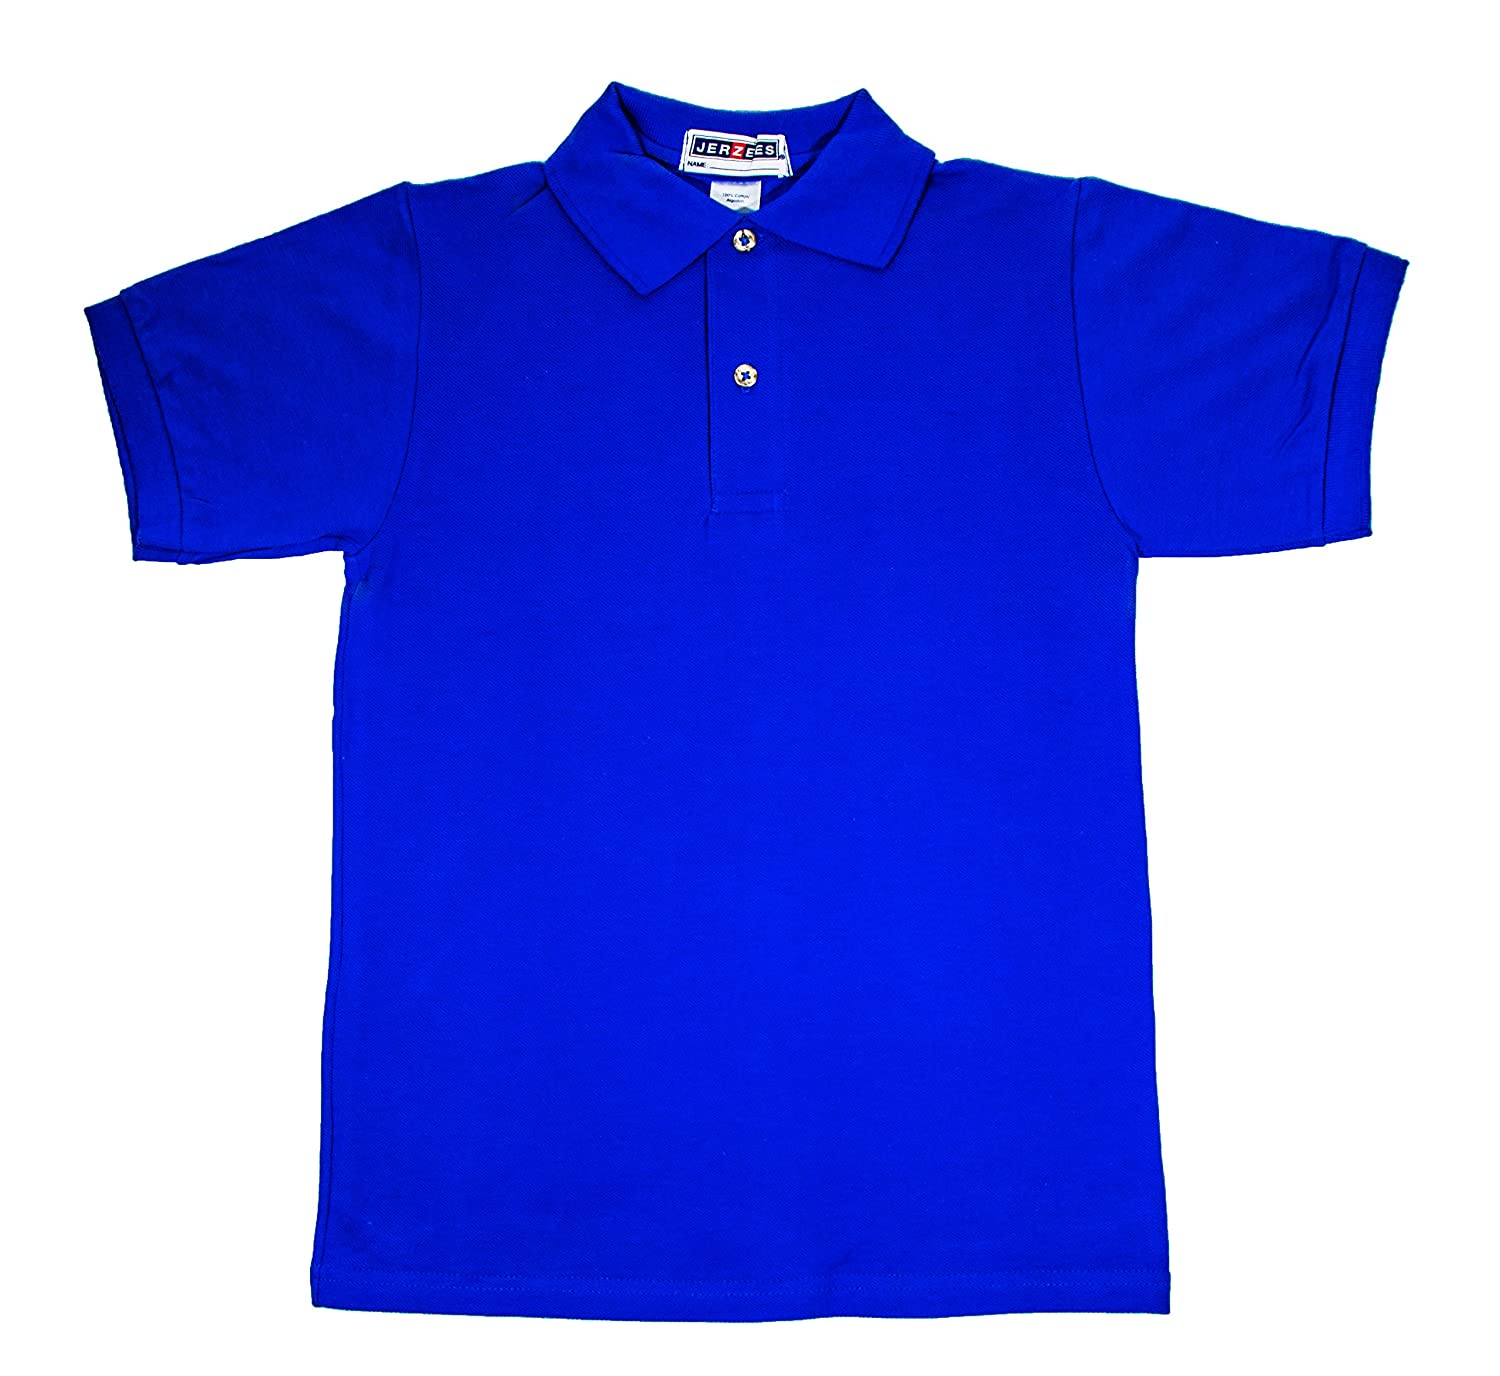 Boys Polo Shirt Perfect Fit Kids Children Clothe 100% Cotton Short